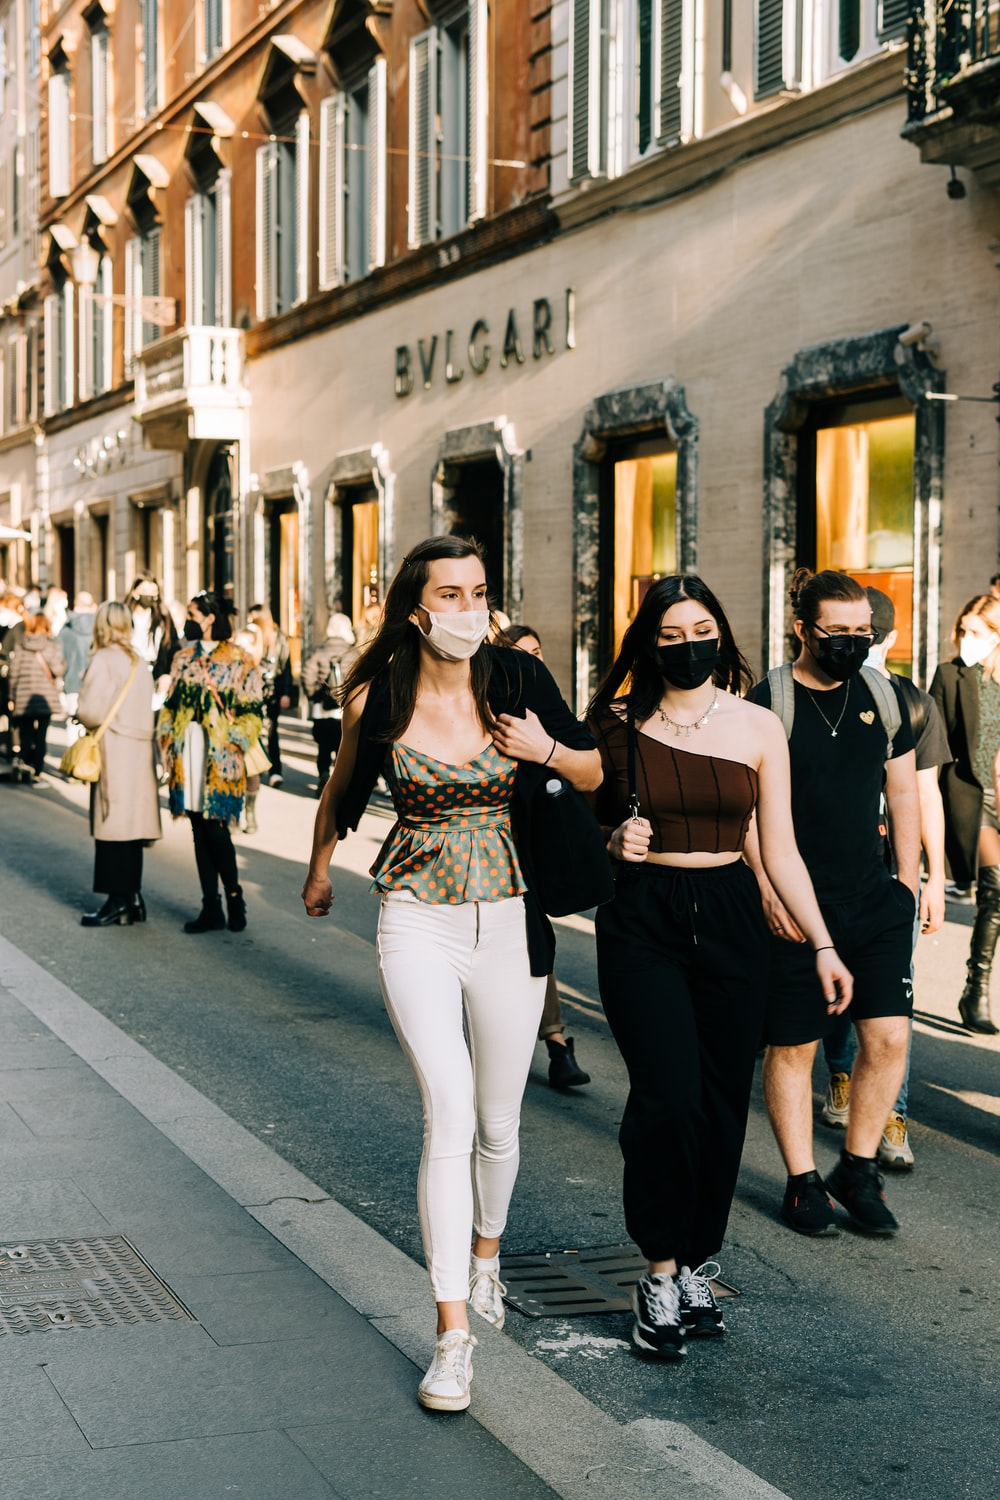 woman in black tank top and white pants standing beside man in black t-shirt